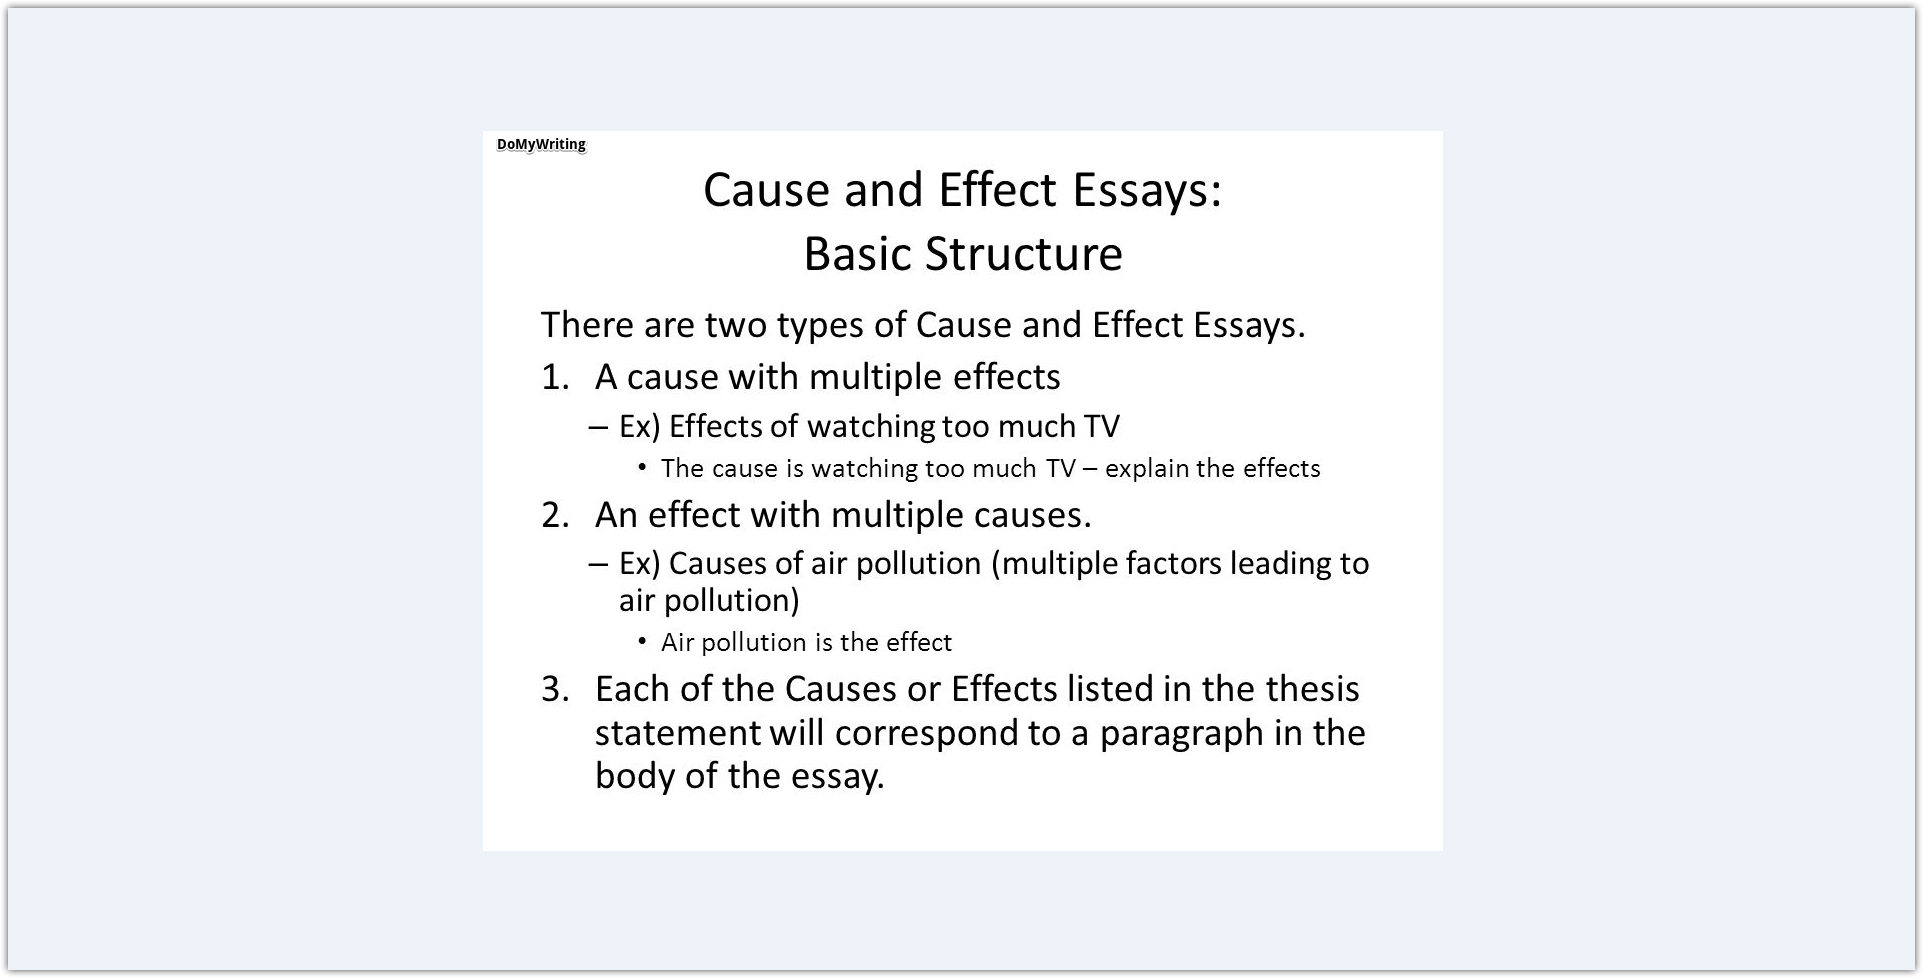 013 Cause And Effect Essay Topics Structure Dreaded Samples Pdf Template Free Full